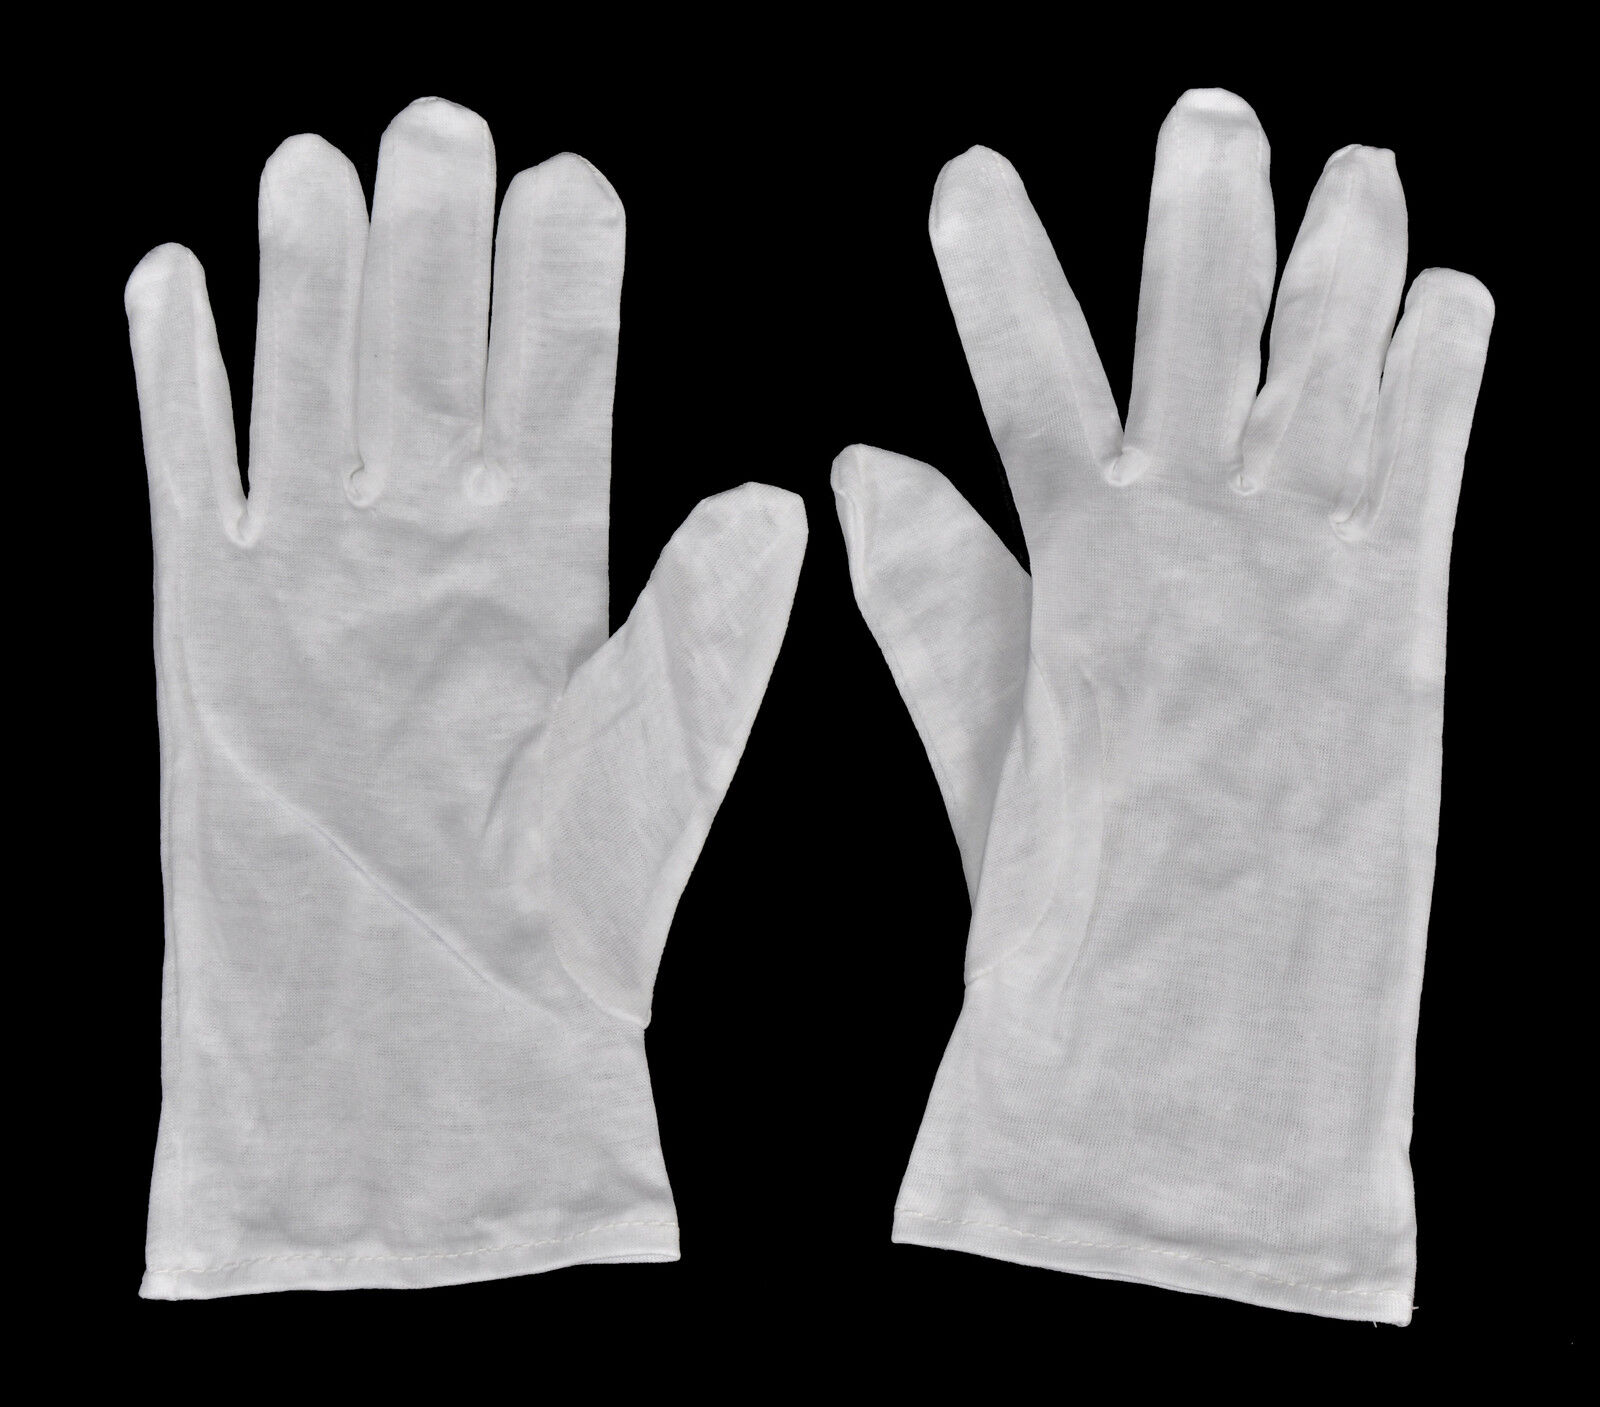 1 Pair White Lab Gloves - Size L - from Cotton - New